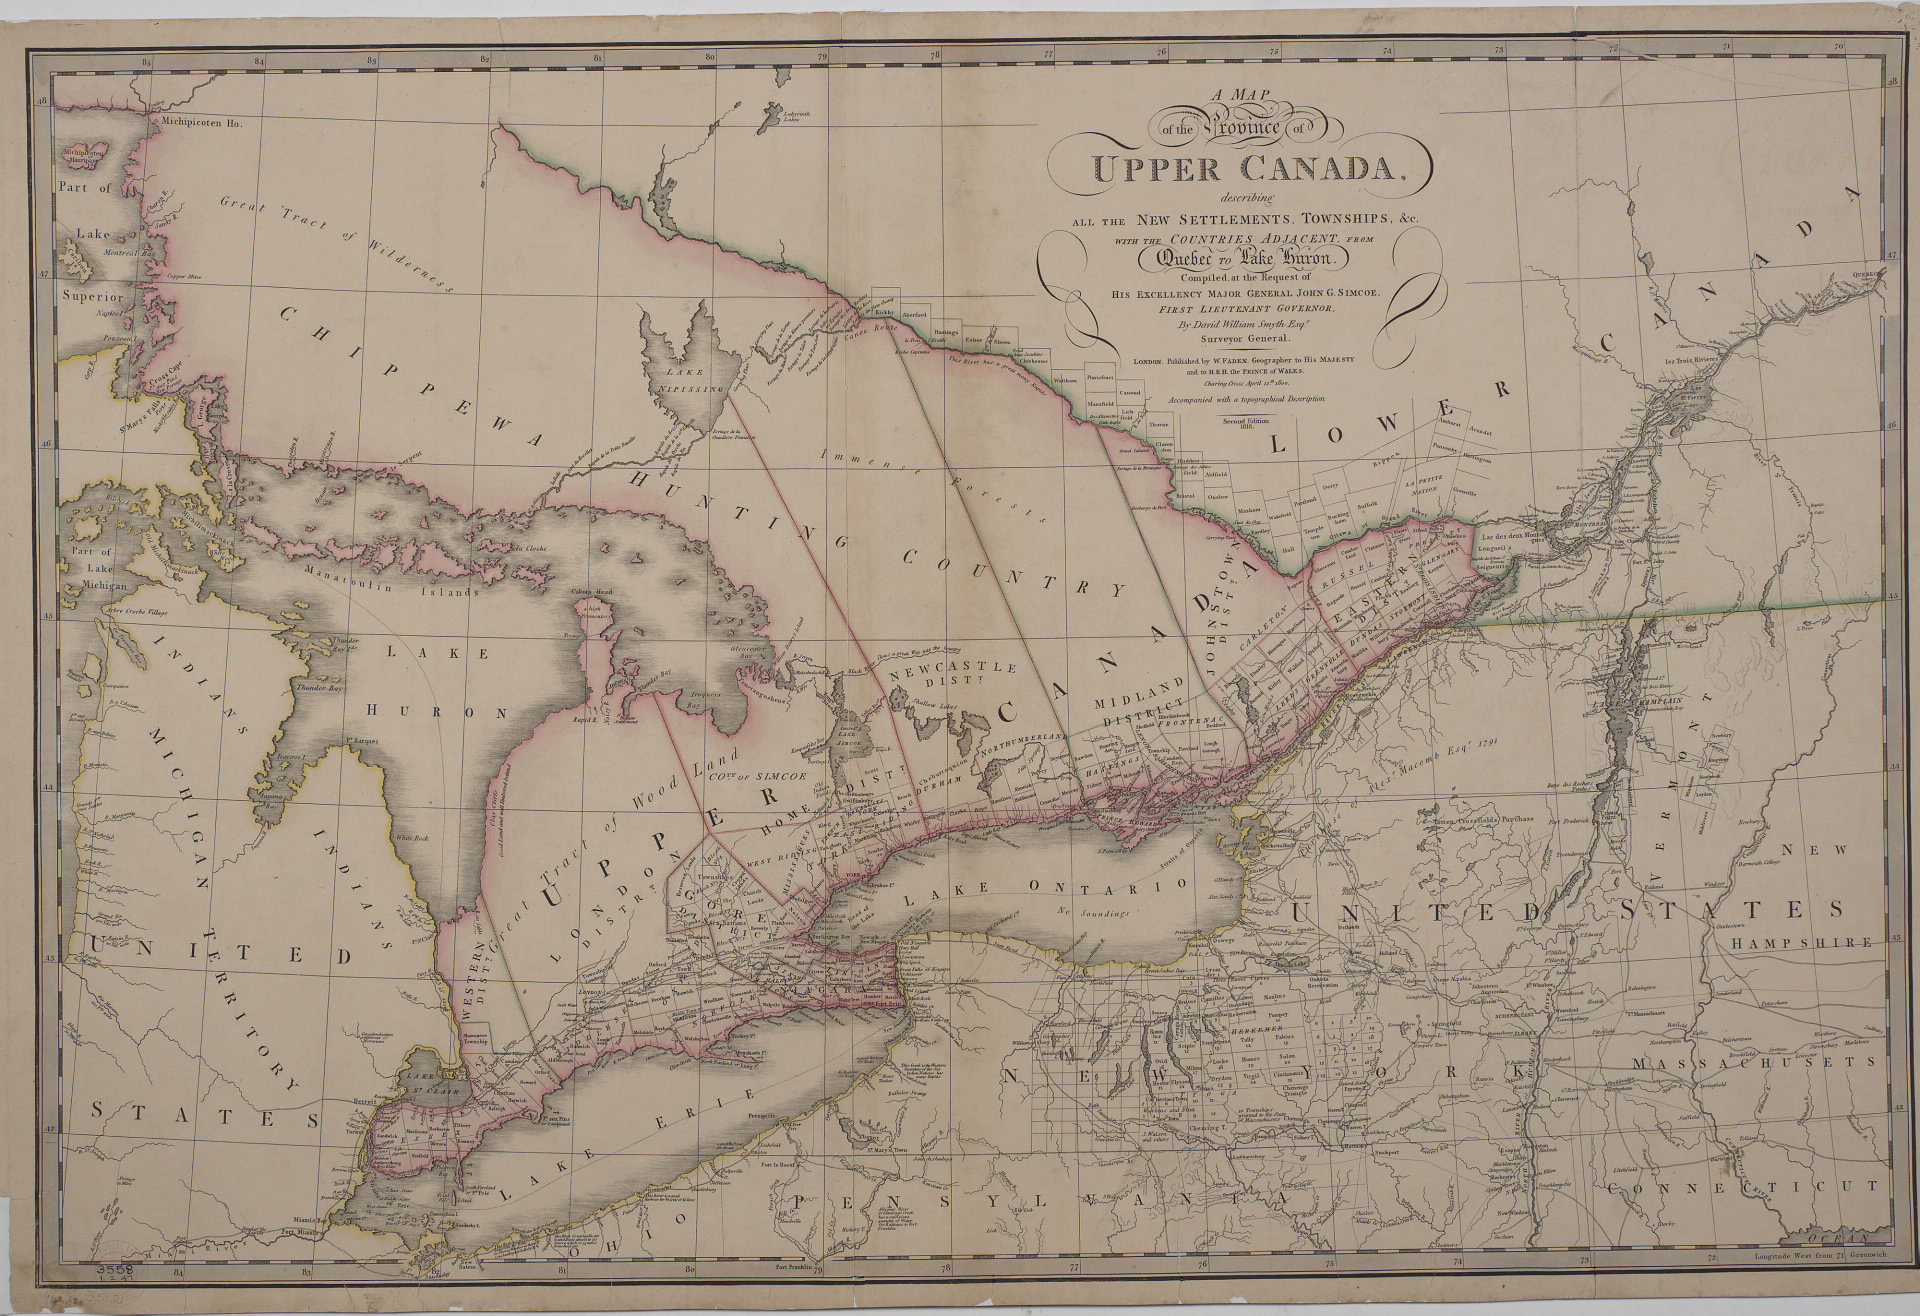 File A map of the province of Upper Canada describing all the     File A map of the province of Upper Canada describing all the settlements  and townships